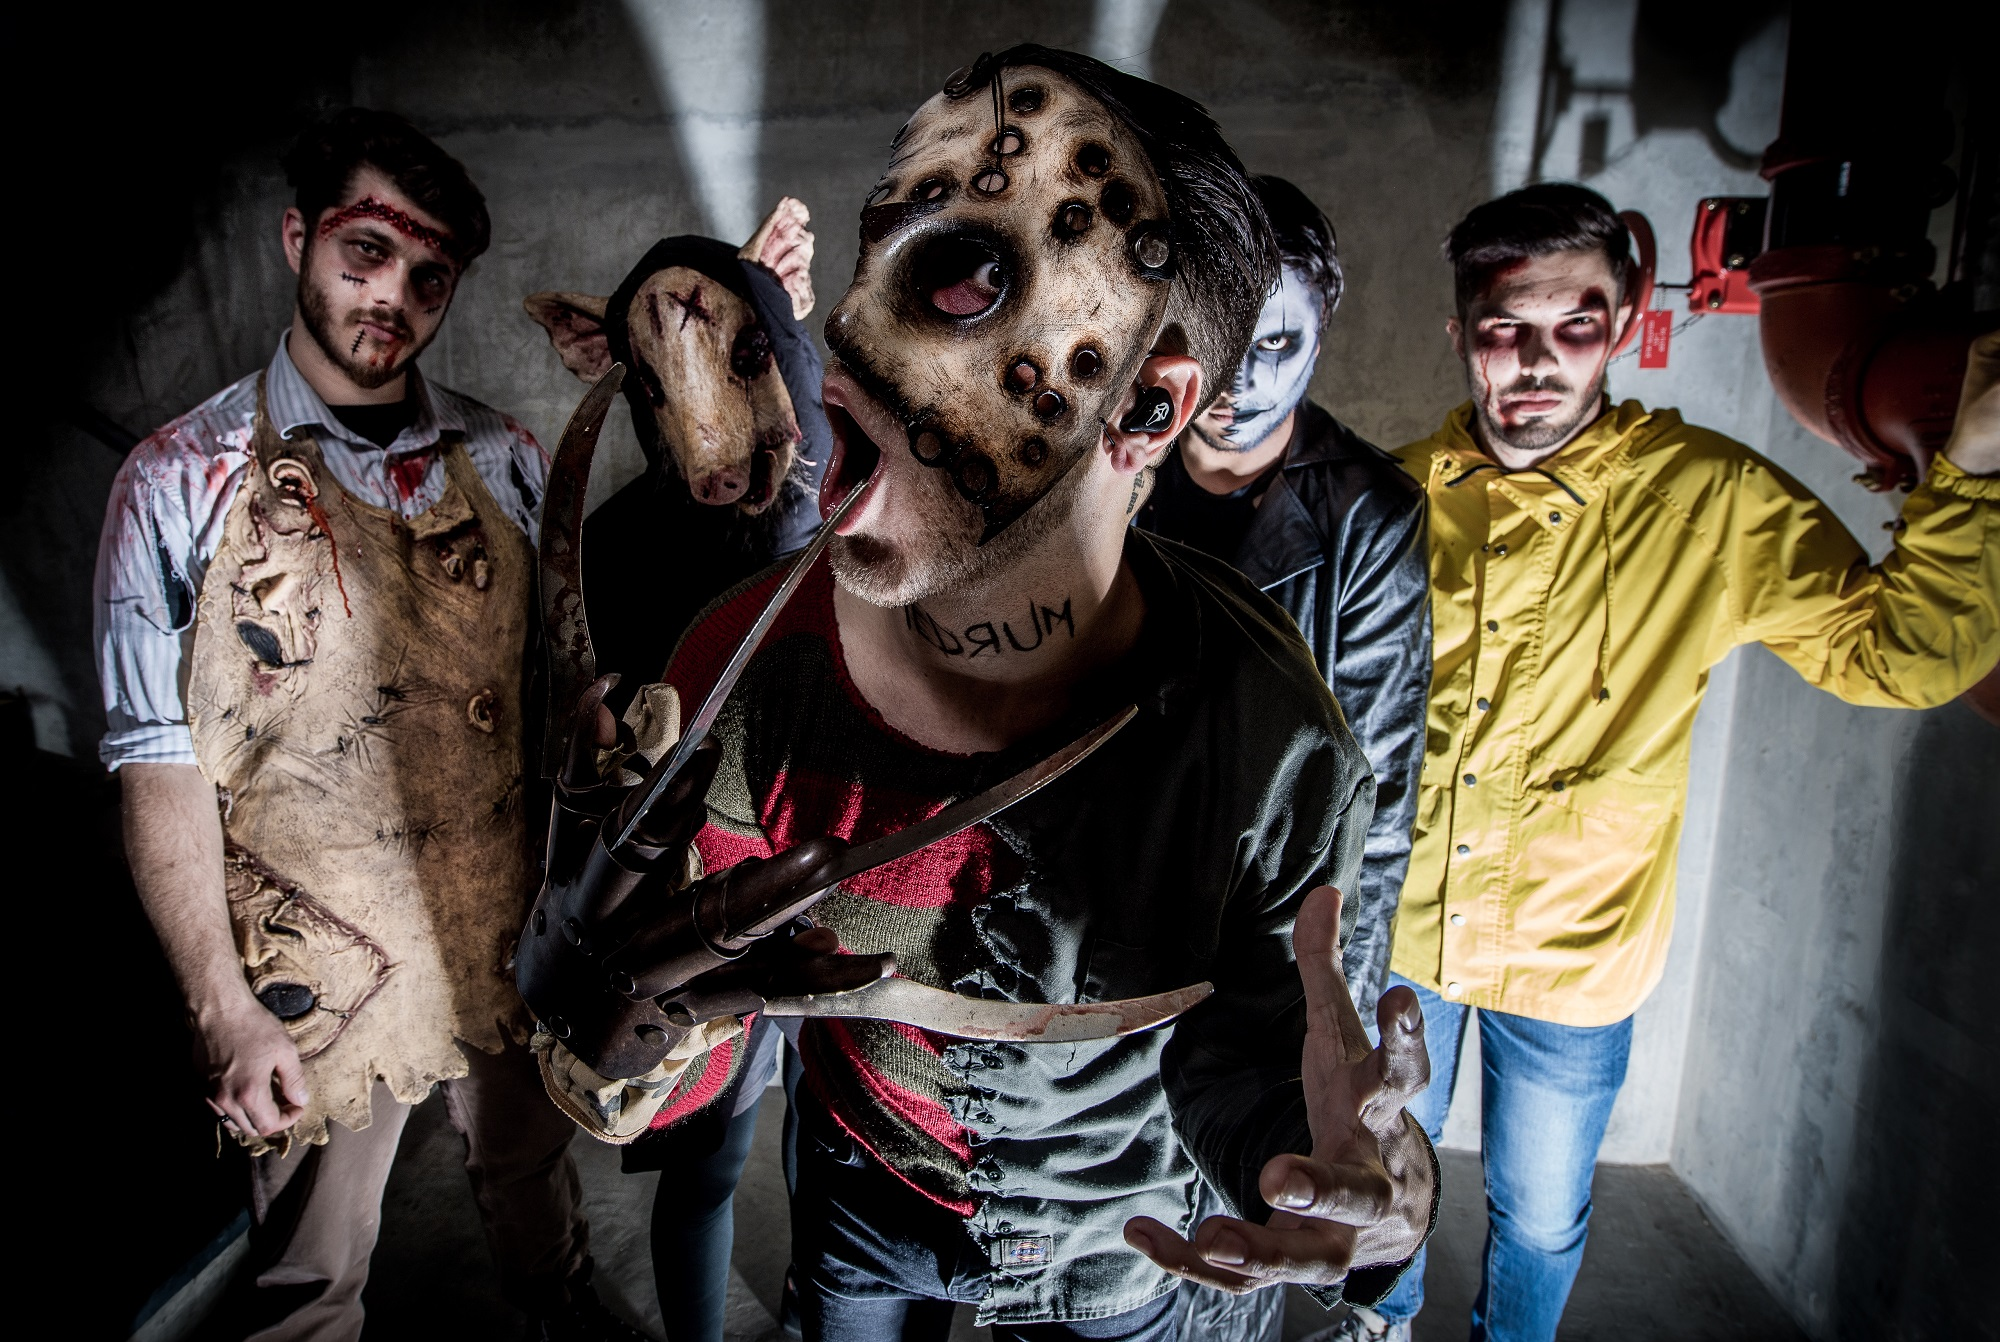 ICE NINE KILLS ANNOUNCE 'UNDEAD & UNPLUGGED AT THE OVERLOOK HOTEL' EP